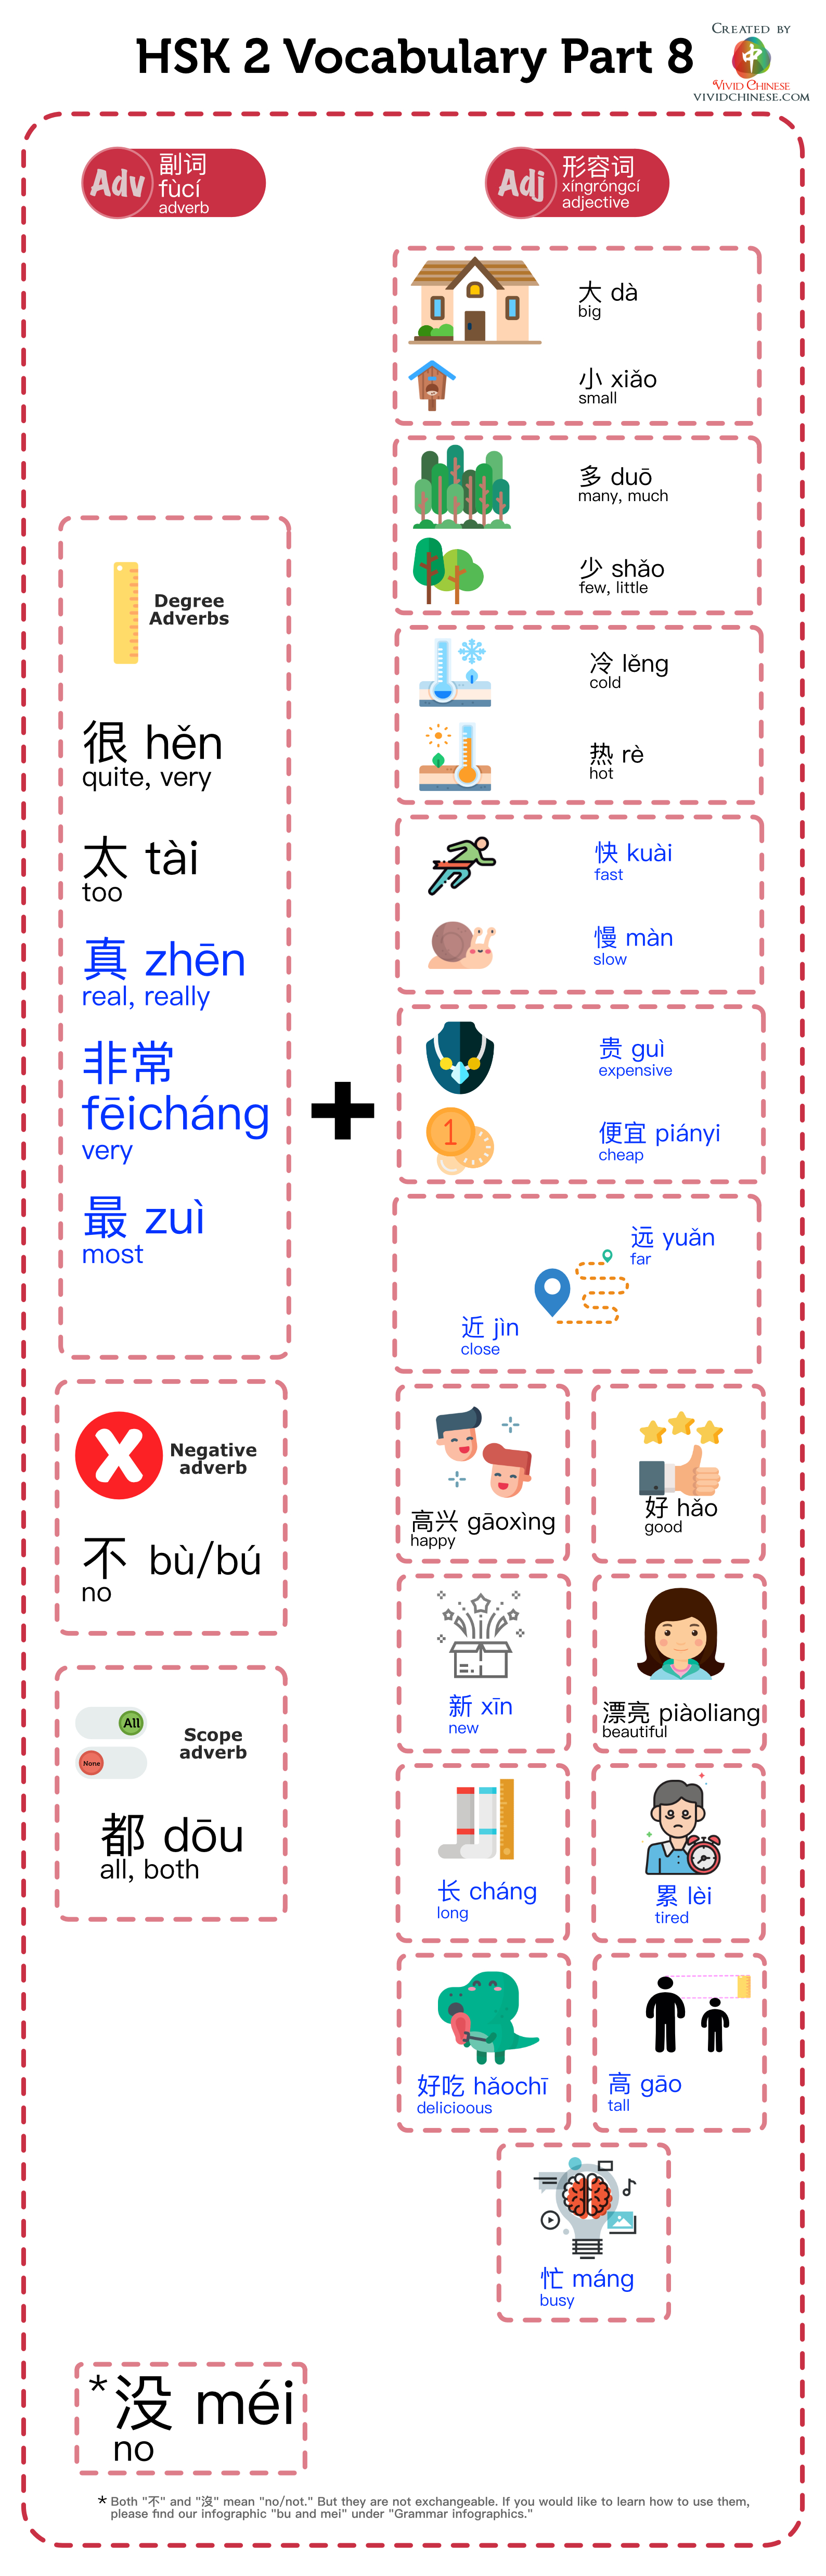 HSK 2 Vocabulary (Part 8) Infographic